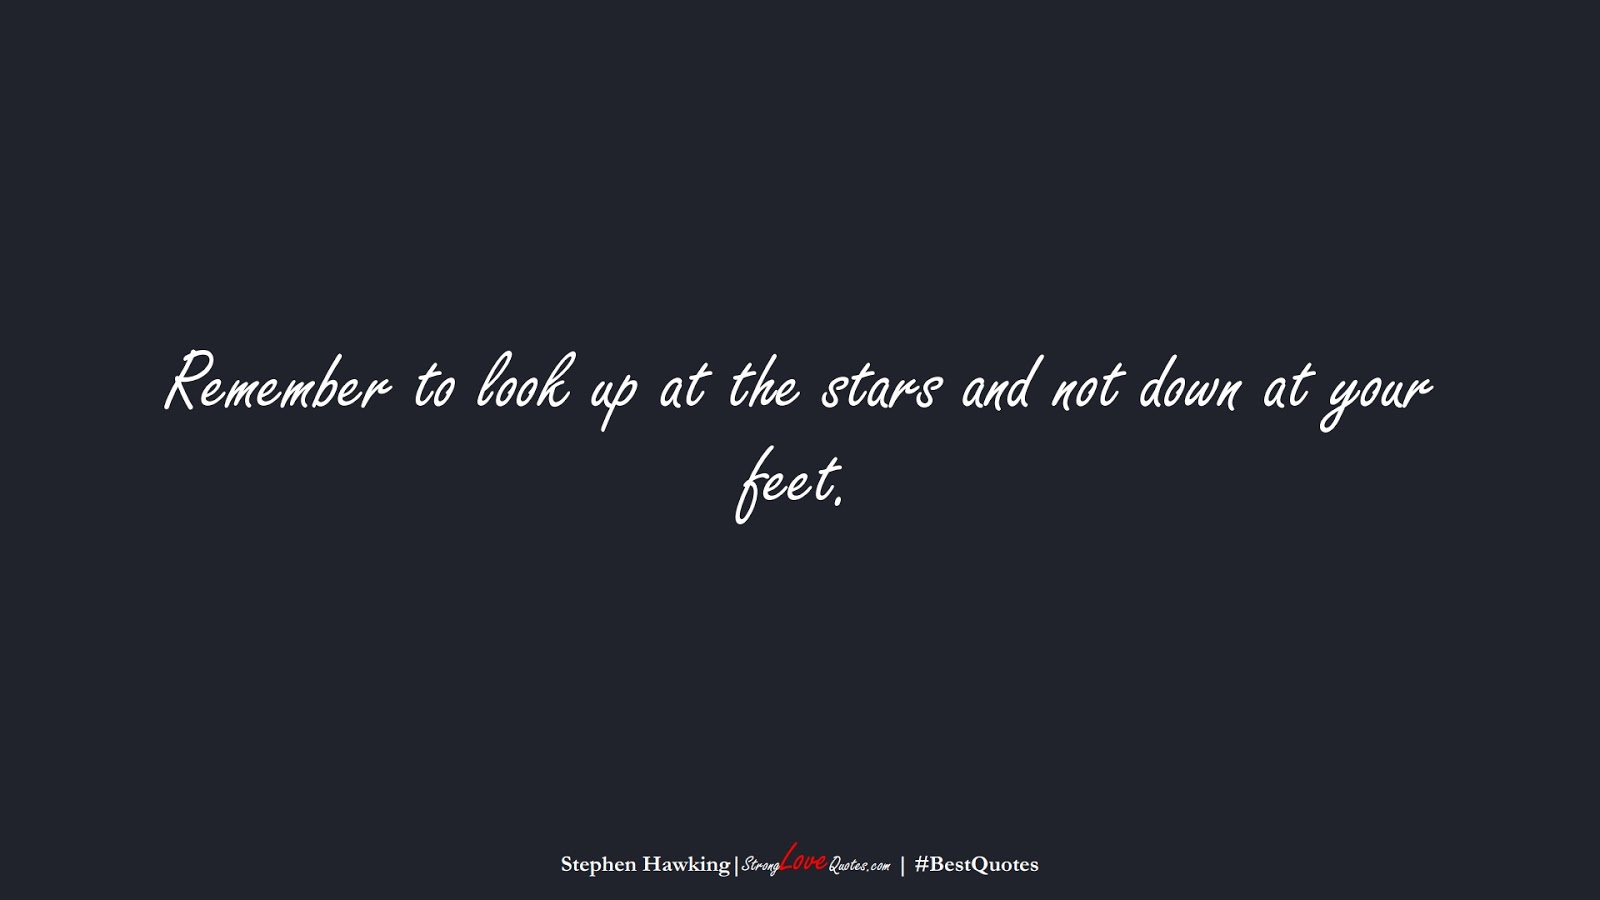 Remember to look up at the stars and not down at your feet. (Stephen Hawking);  #BestQuotes